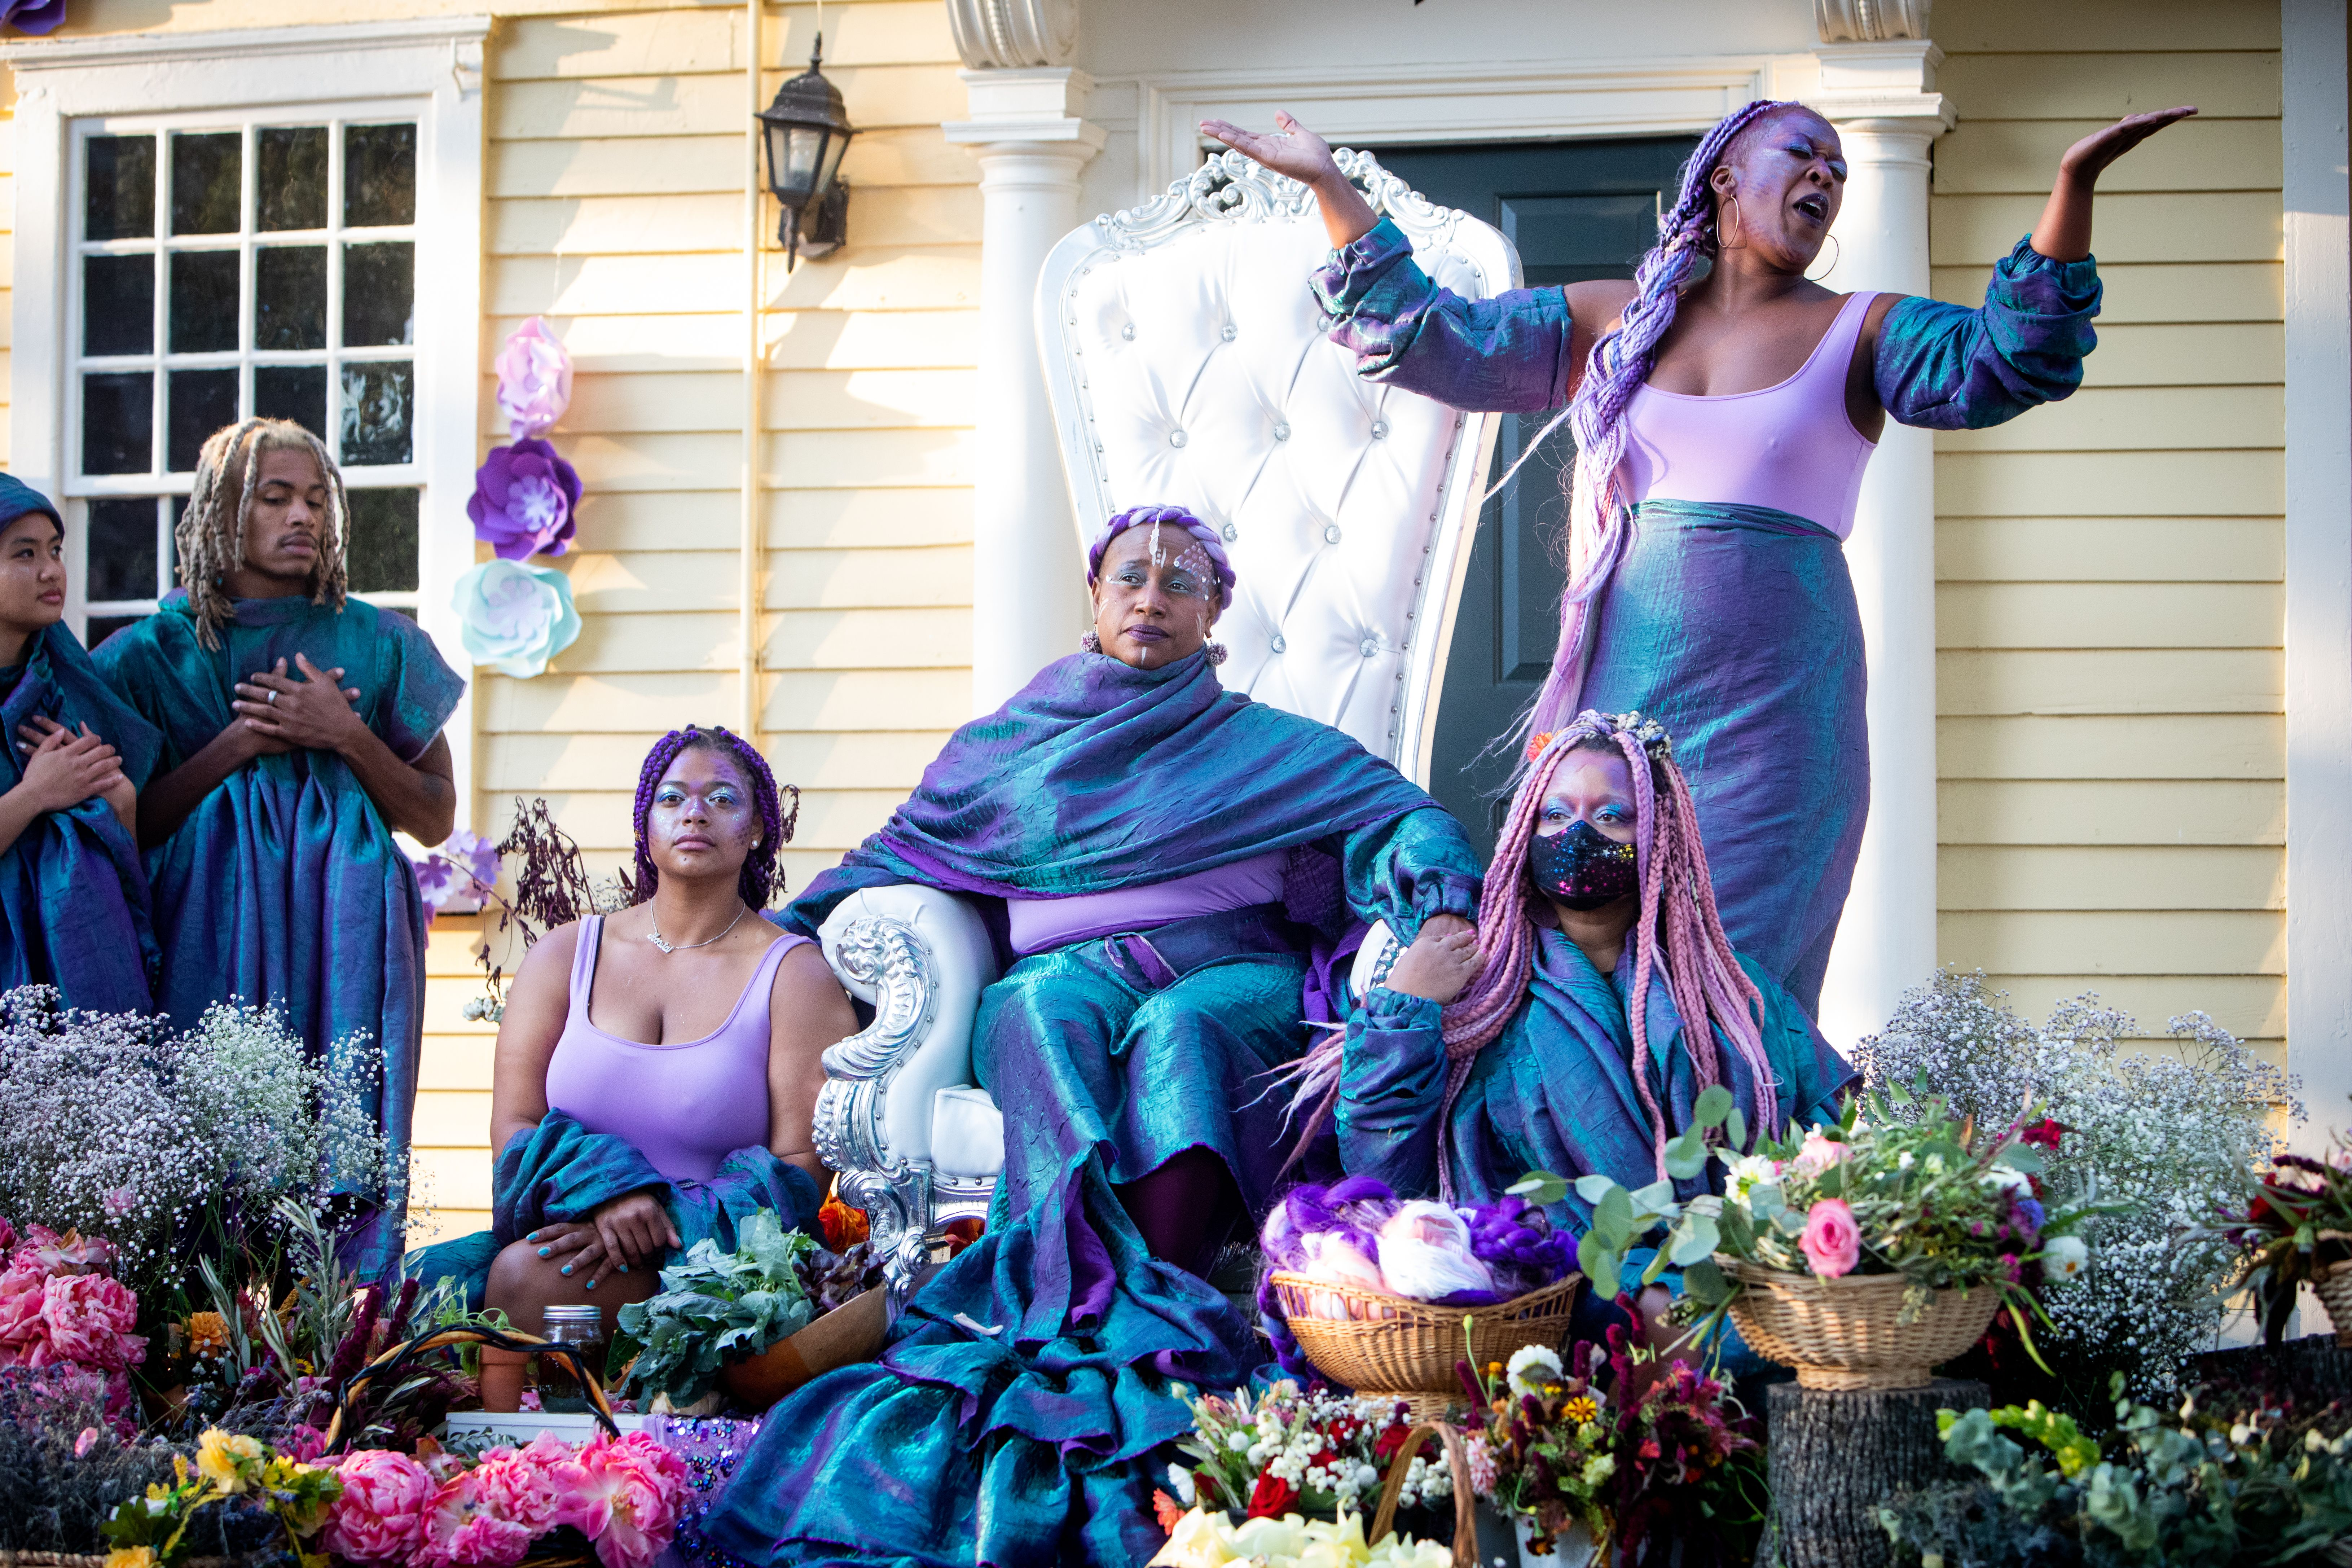 """From left to right: Alexx Temena, Trent Lee, Assitan Coulibaly, April Brown, Jess Brown (standing) and Simony Rendesde in Haus of Glitter Dance Company's """"The historical fantasy of Esek Hopkins."""""""